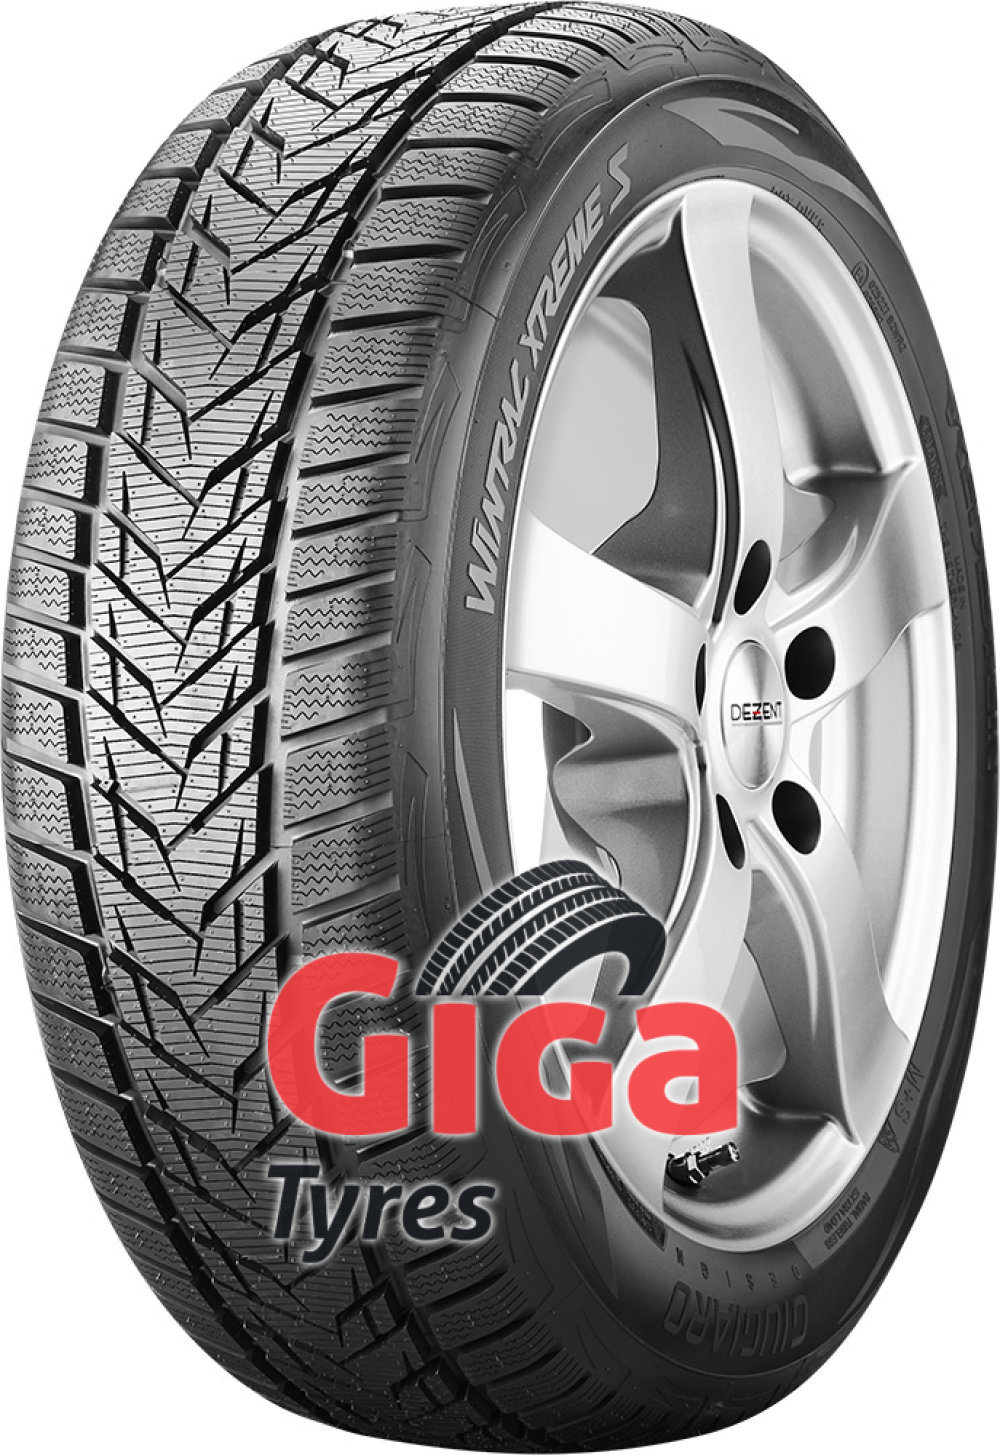 Vredestein Wintrac Xtreme S ( 215/70 R16 100H , with rim protection ridge (FSL) )